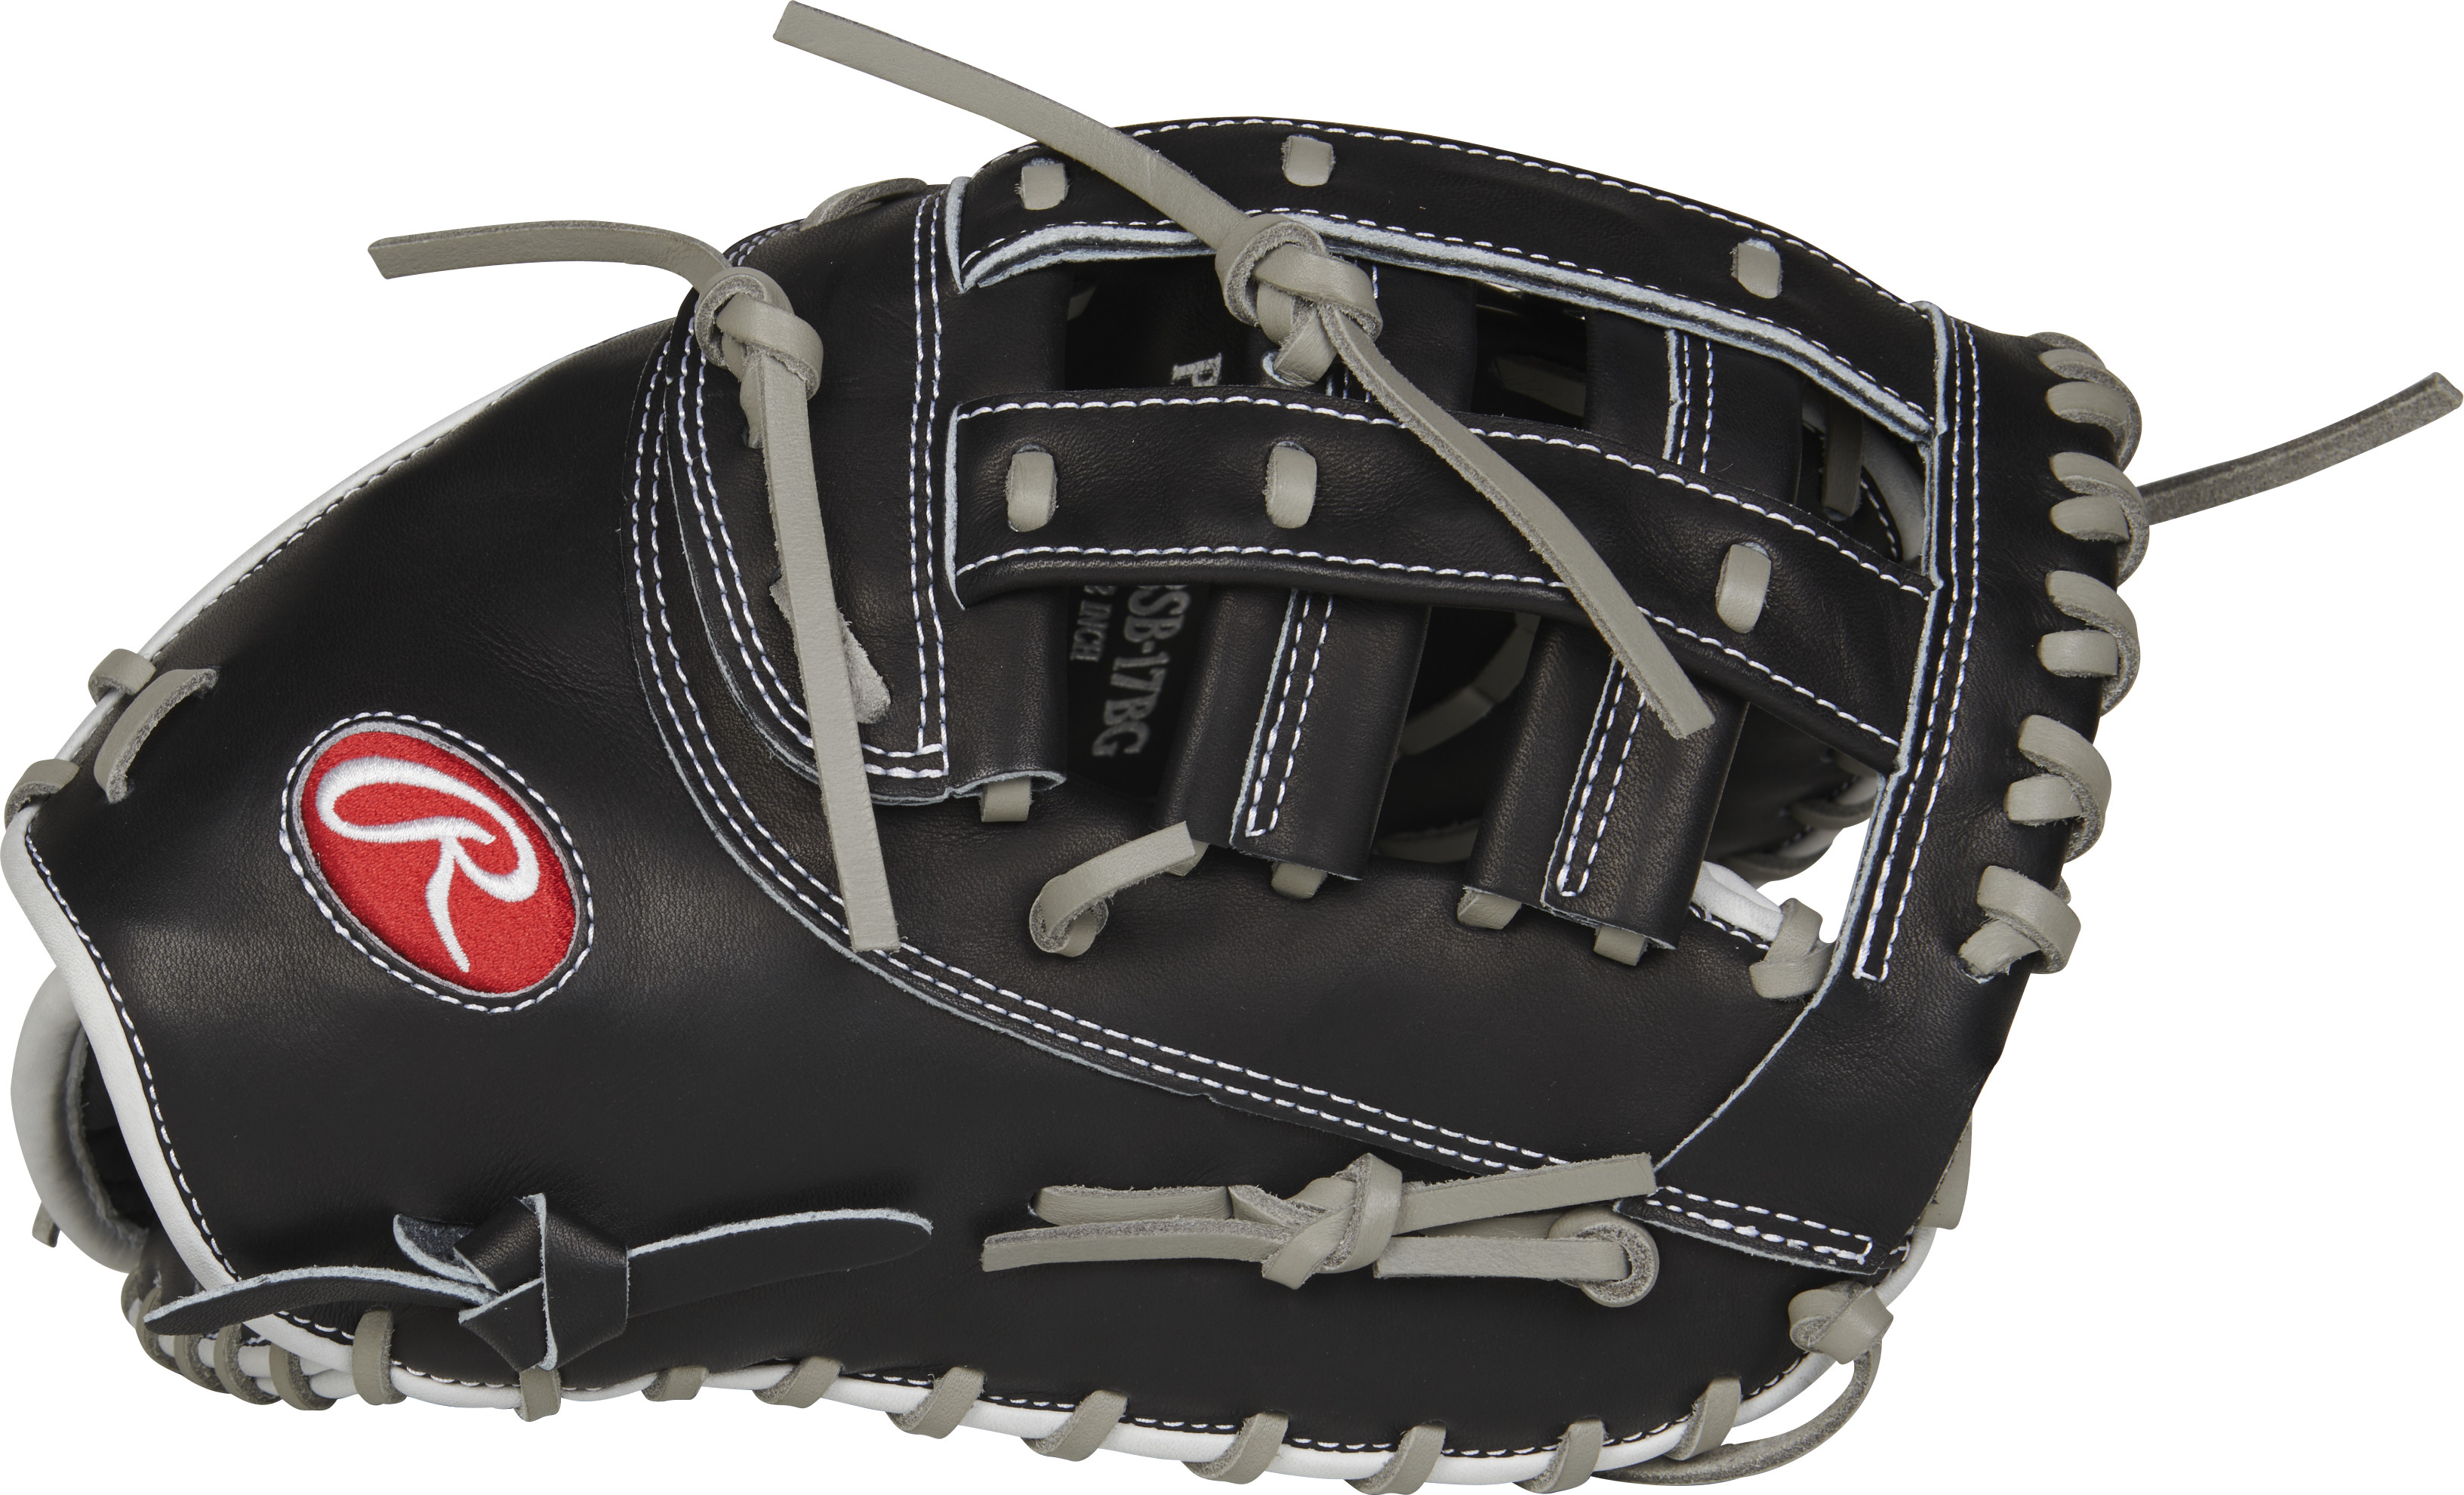 http://www.bestbatdeals.com/images/gloves/rawlings/PROTM8SB-17BG-3.jpg